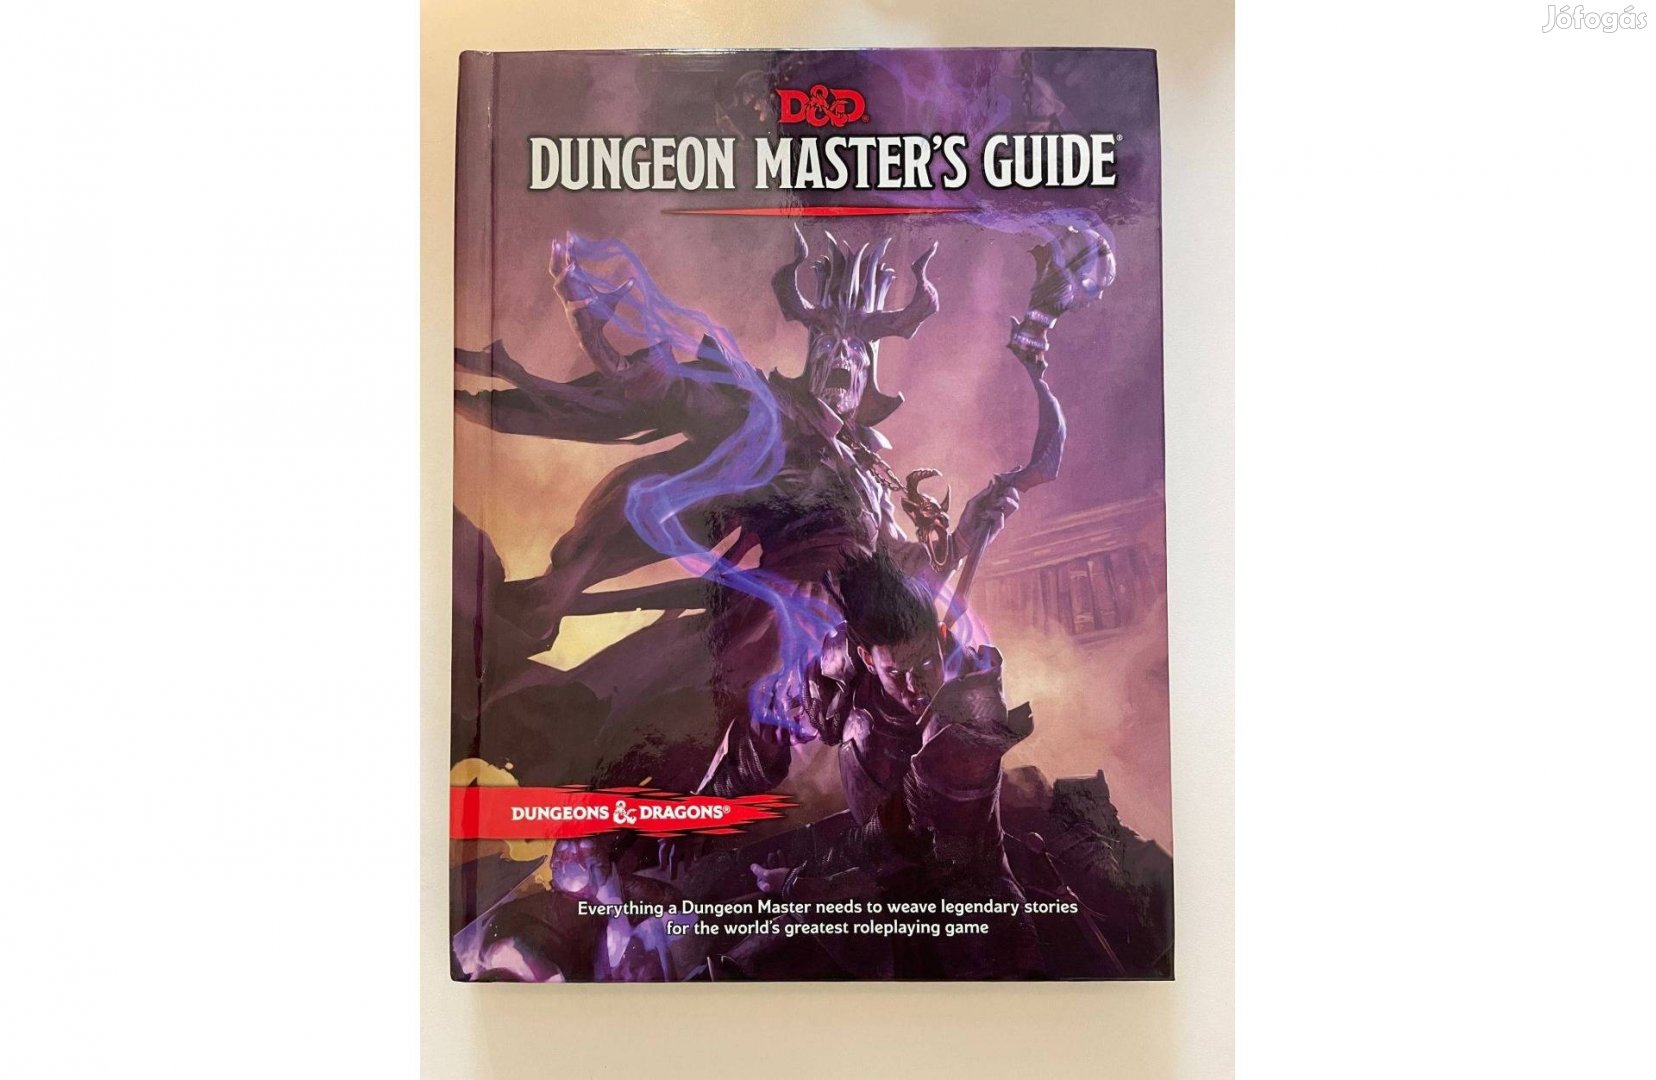 Dungeons & Dragons Dungeon Master's Guide, 5th Edition